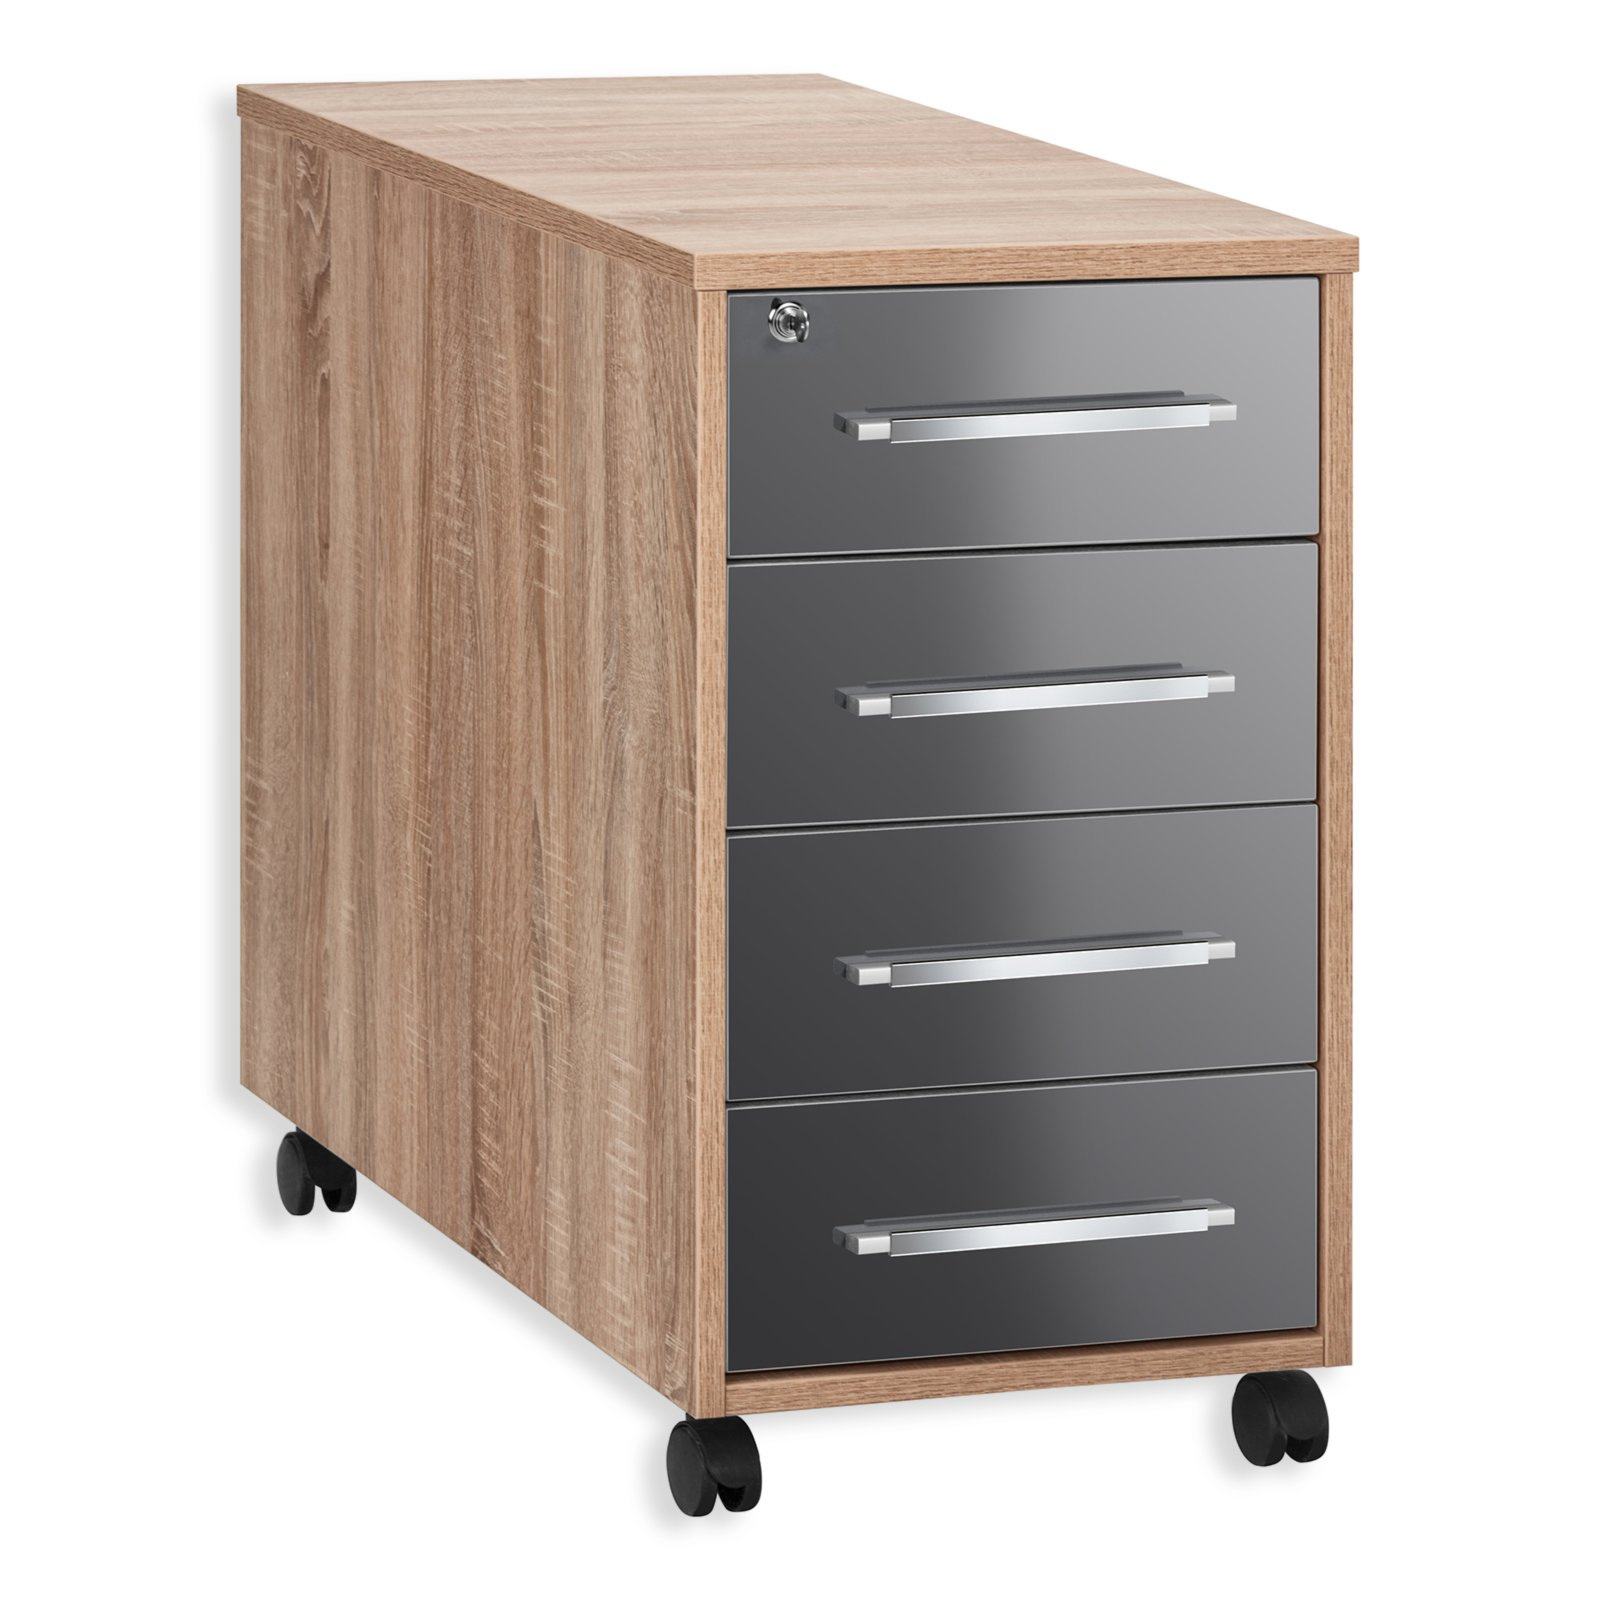 anstell rollcontainer system sonoma eiche grau 43 cm rollcontainer m bel m belhaus roller. Black Bedroom Furniture Sets. Home Design Ideas